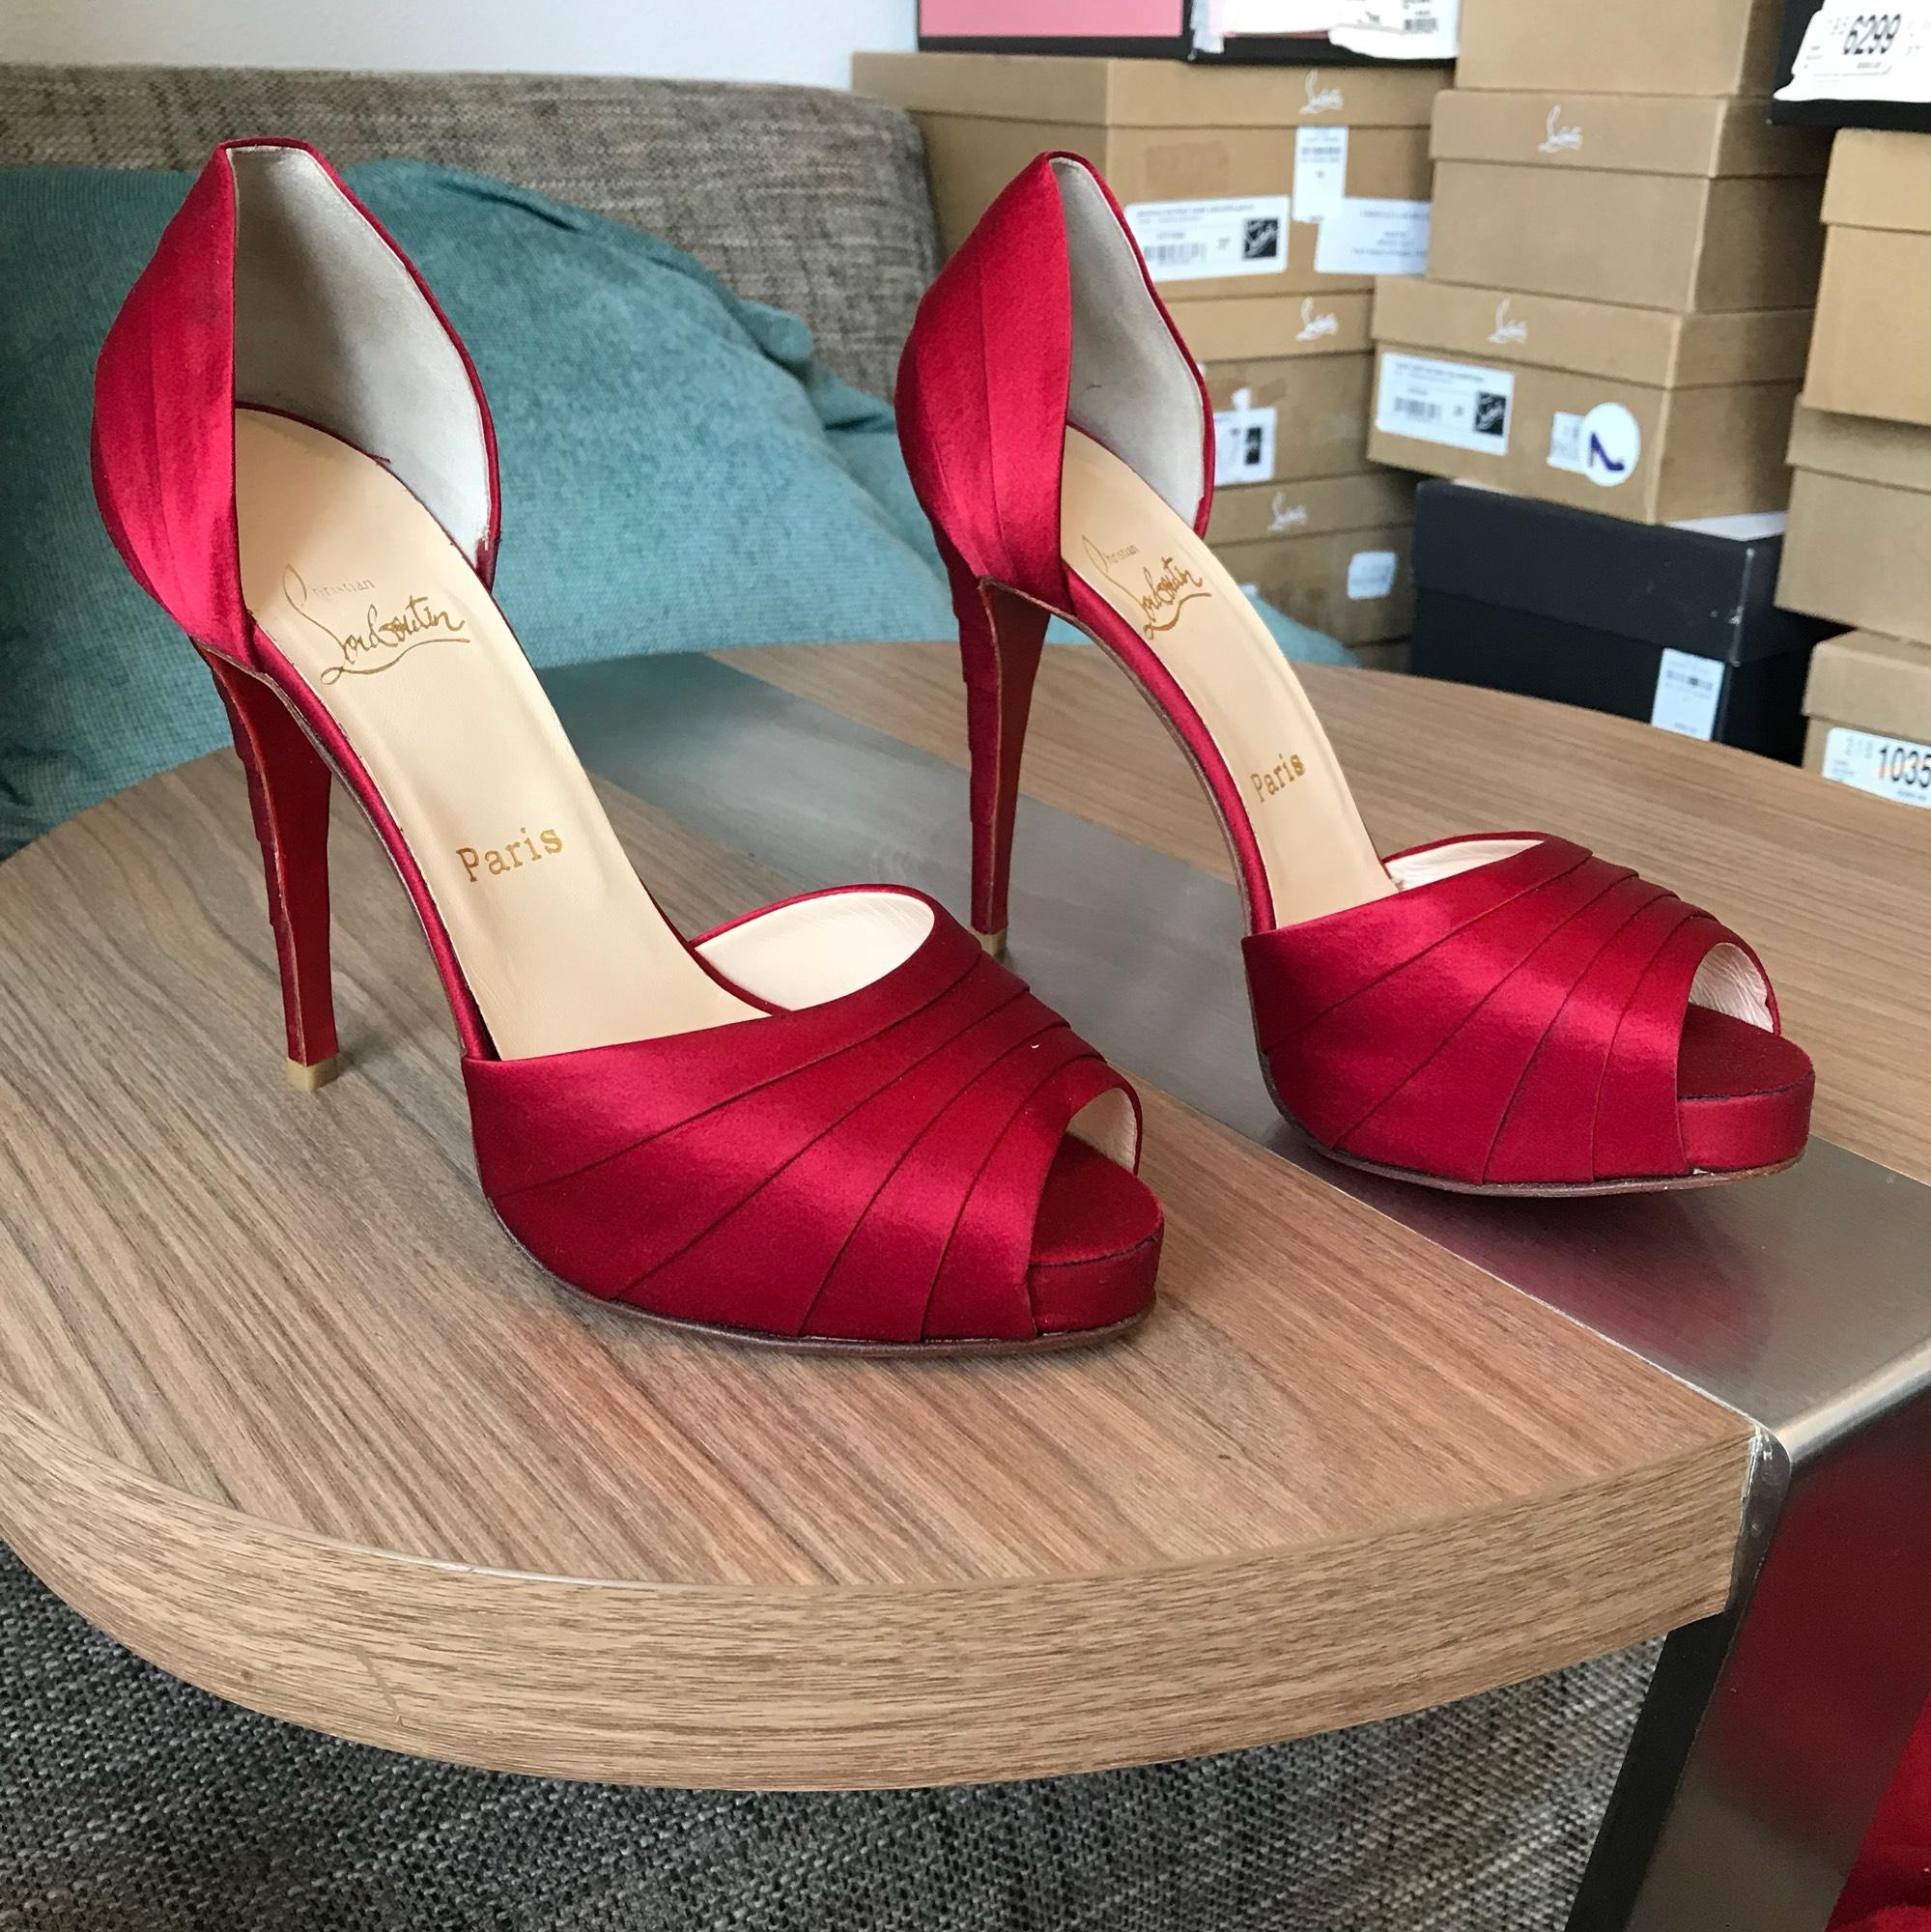 c06655a93898 ... Christian Louboutin Red Armadillo Pumps Size Size Size US 10.5 Regular  (M